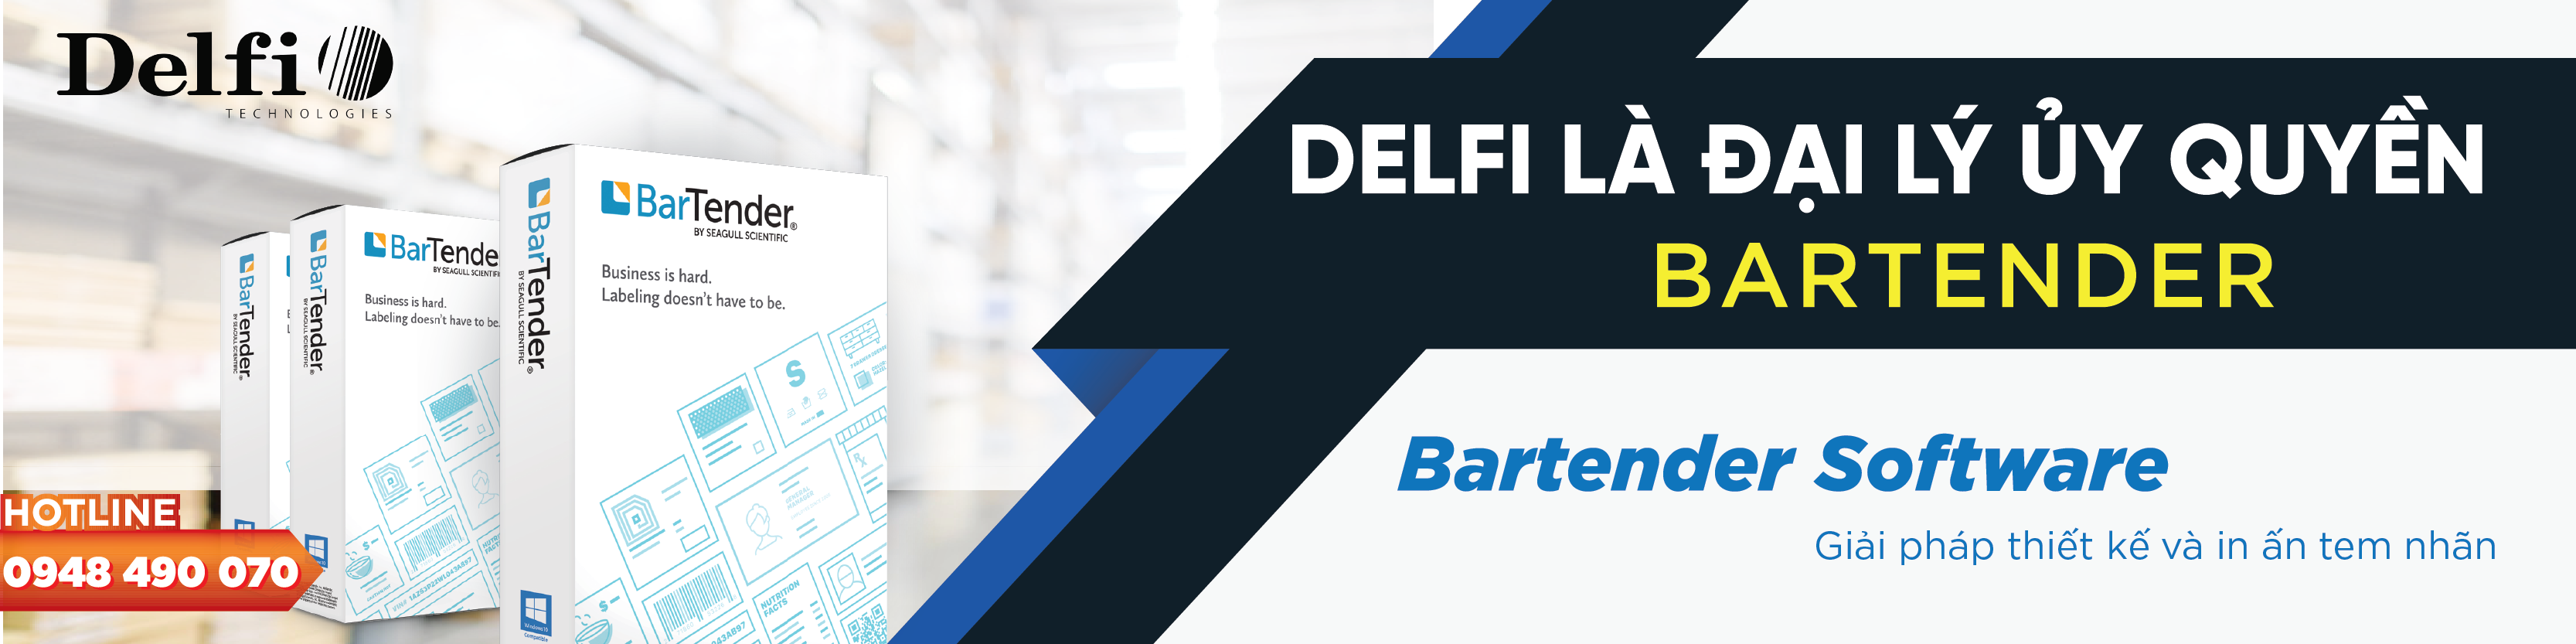 Delfivn is the Authorized reseller of Bartender